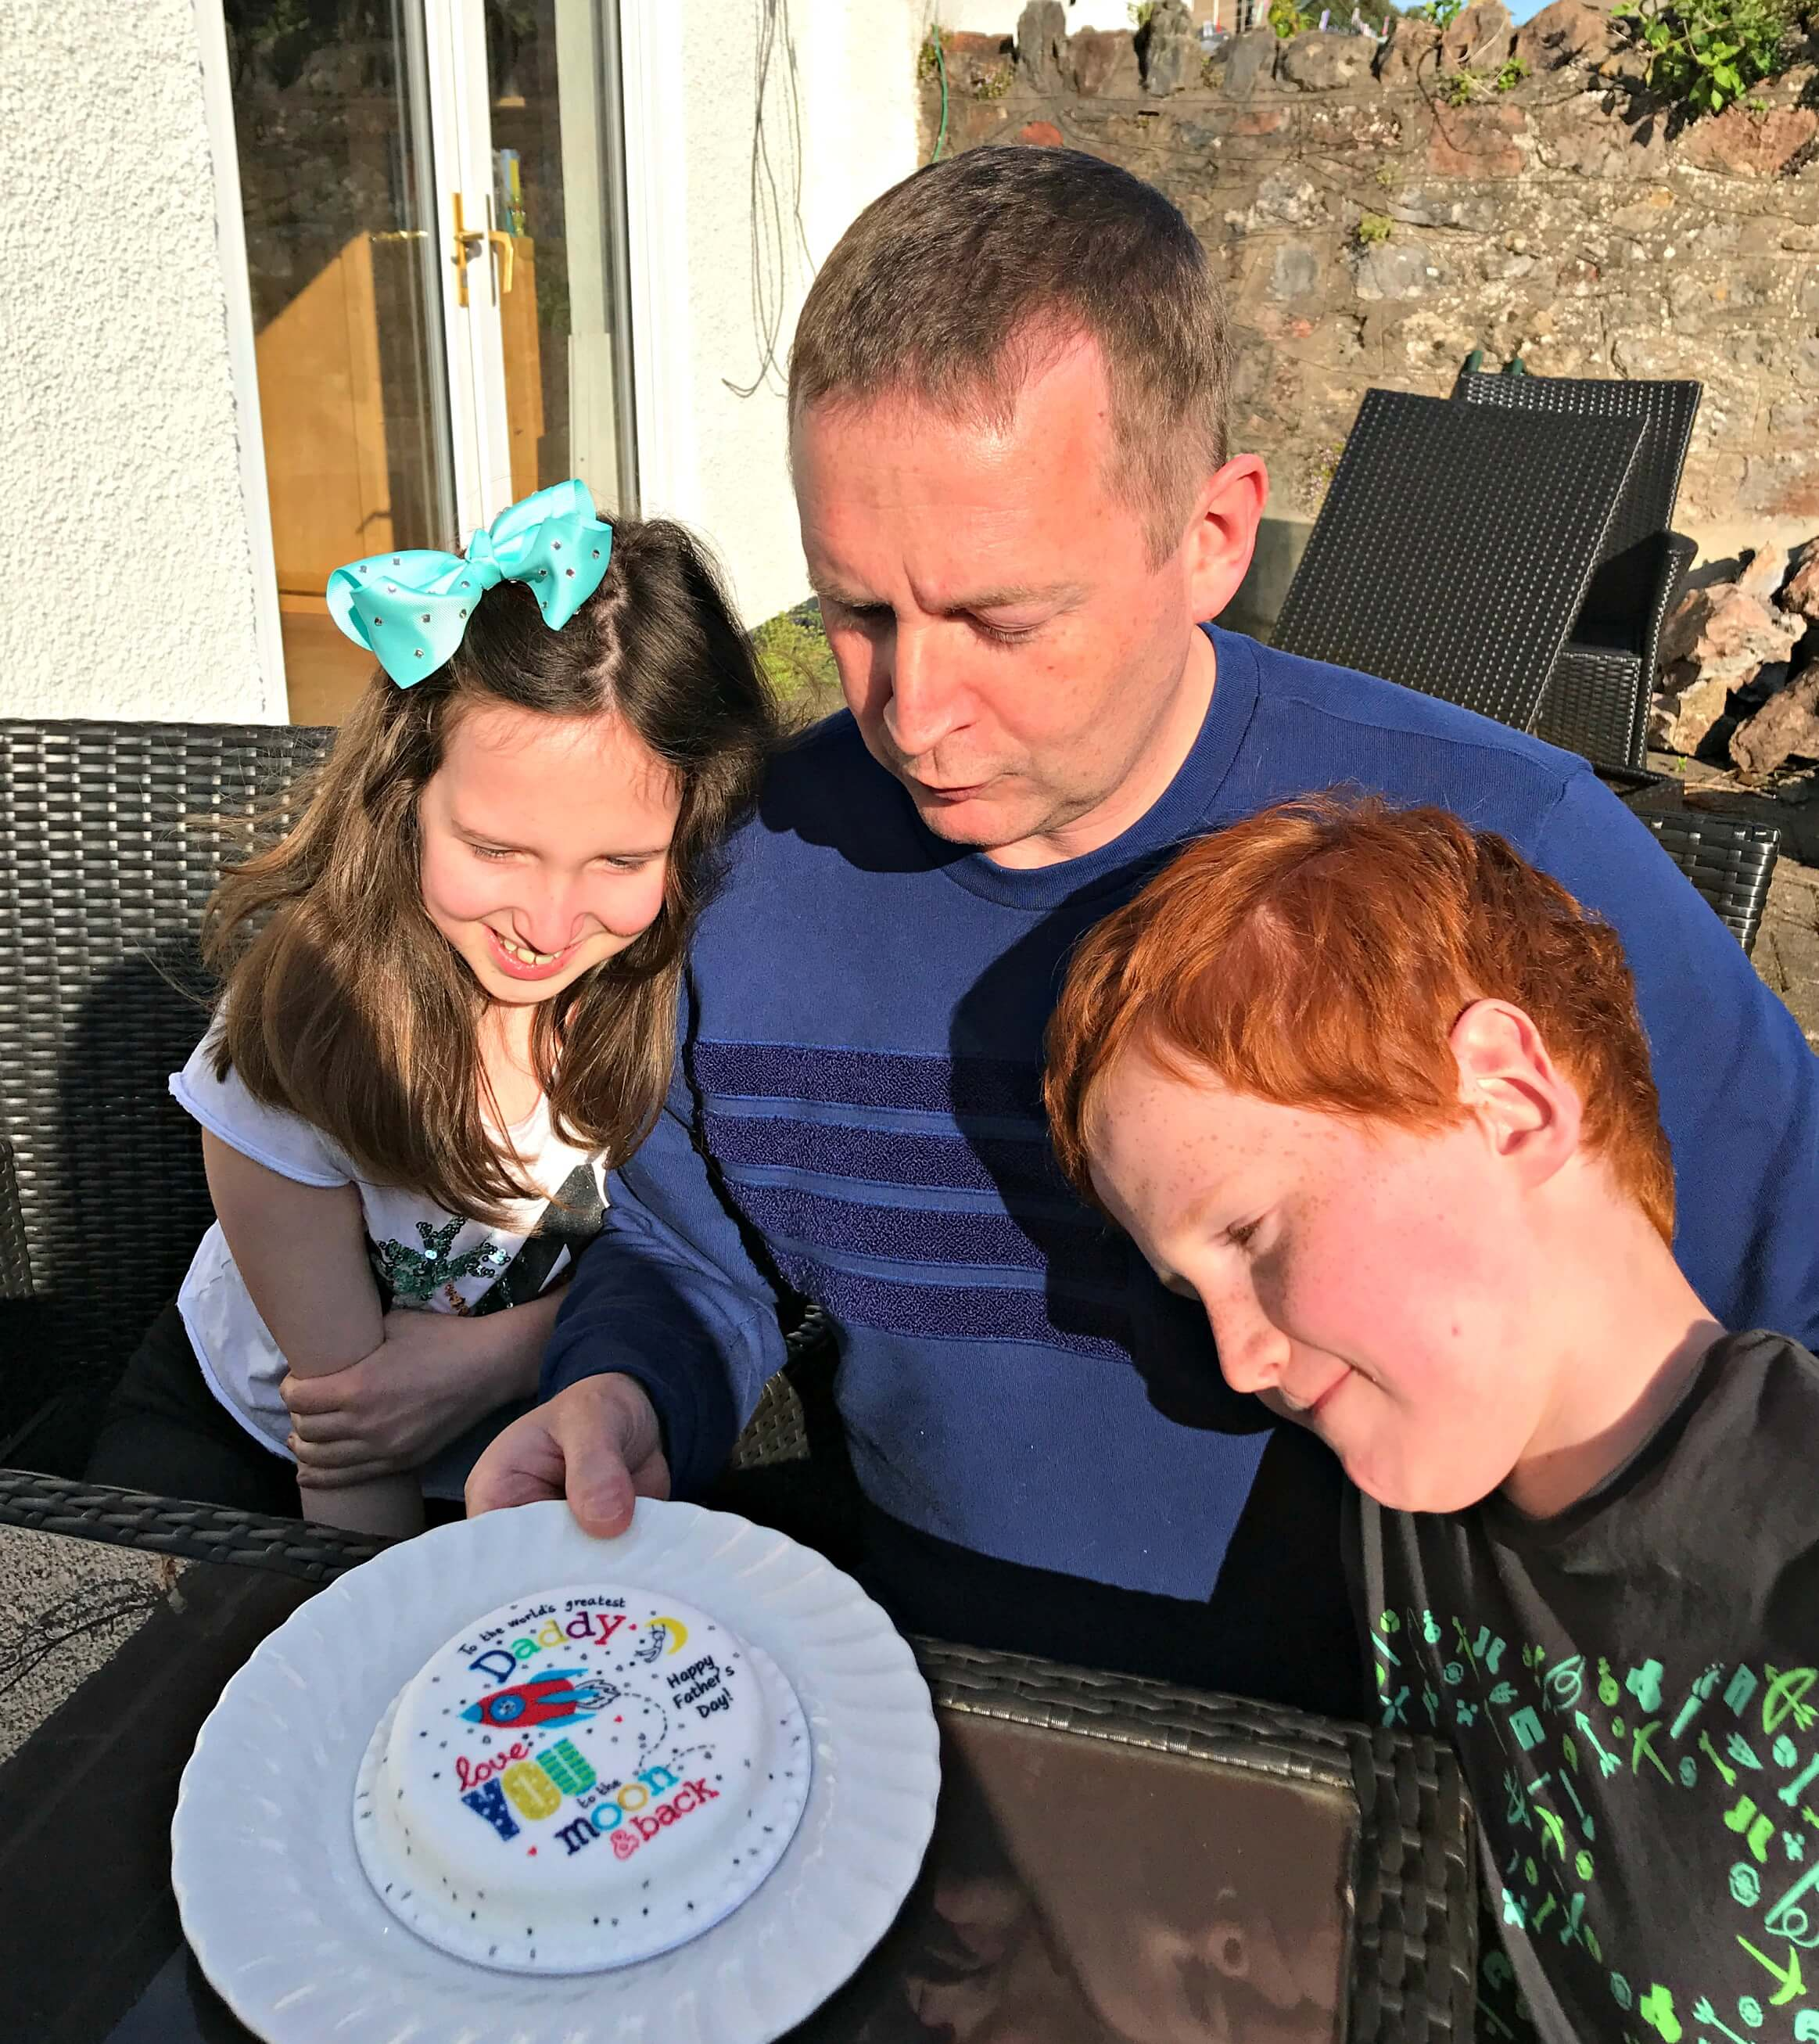 Bakerdays Cakes - Mat, Caitlin and Ieuan with the Father's Day cake